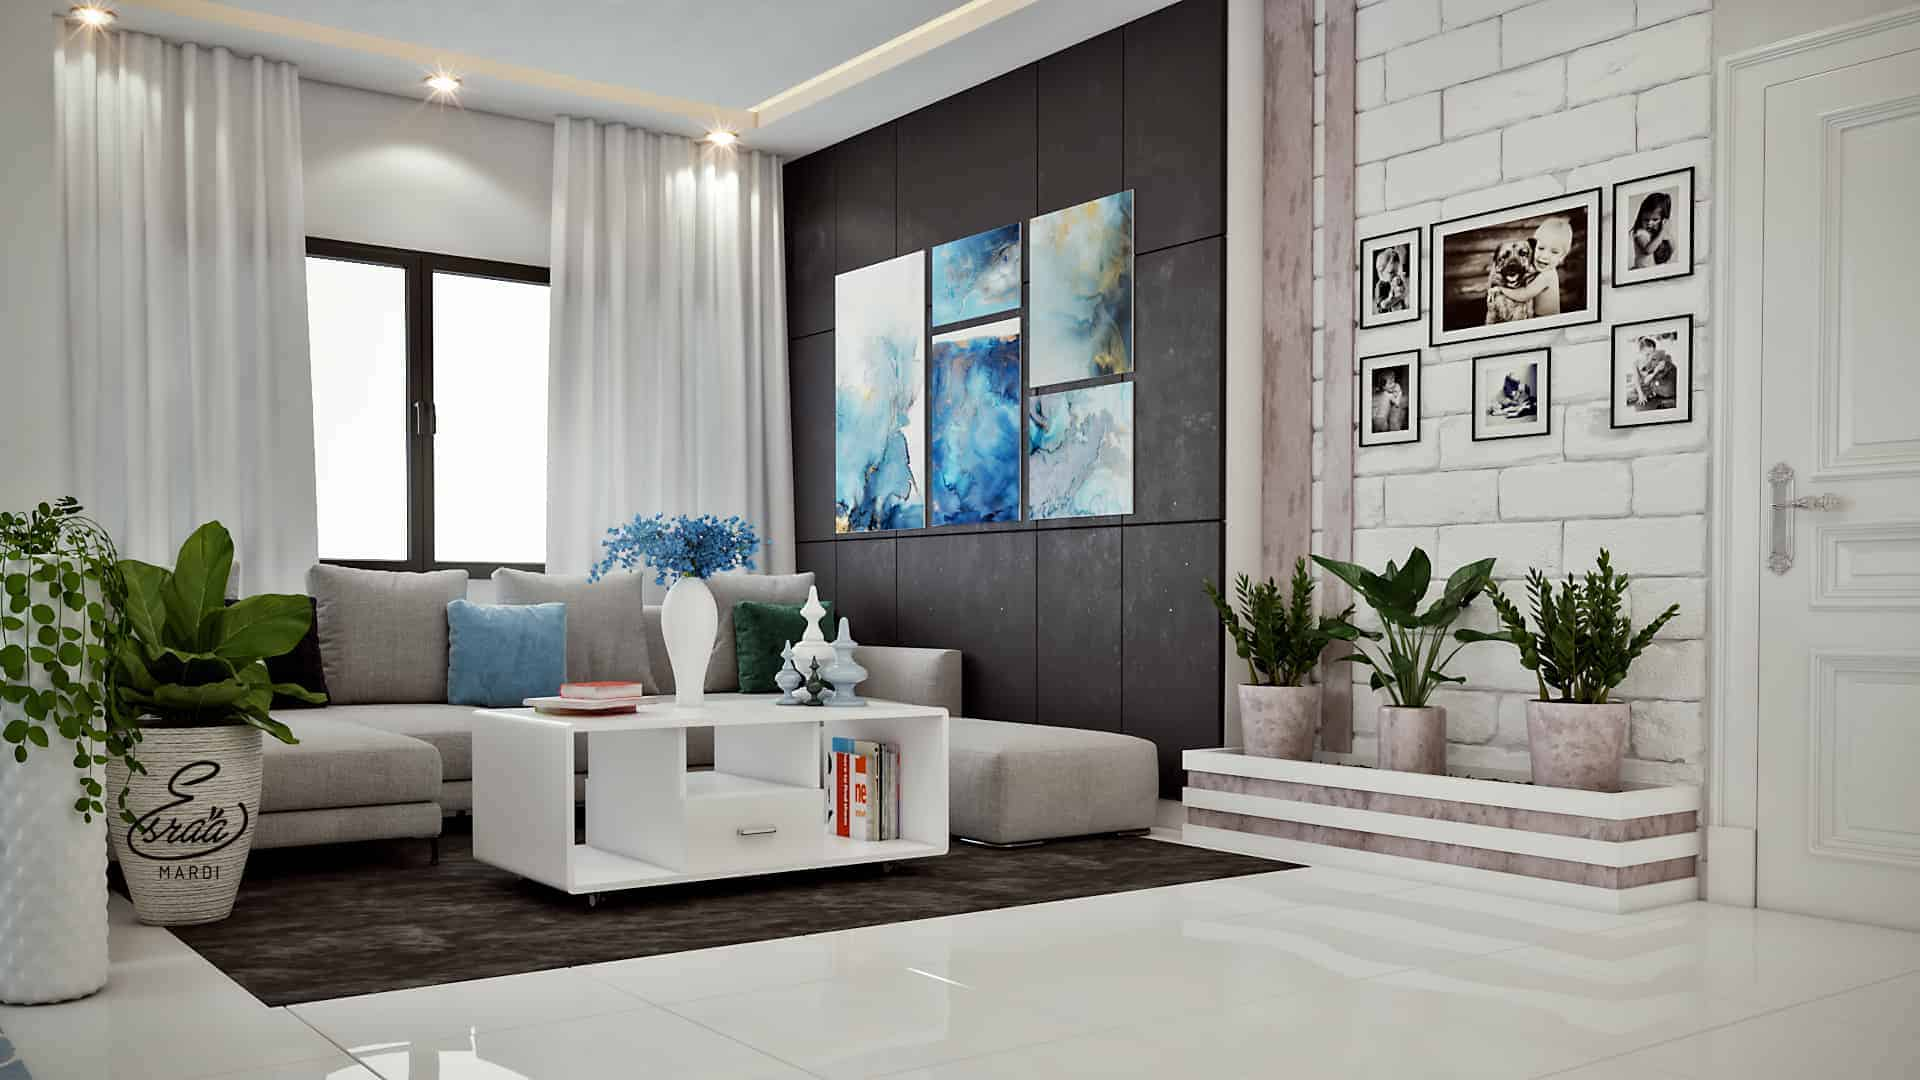 This Modern Room Style Using Simple Color Just White And Blue Not To Many The Contrast Combination With Sky Colors Does Look Cold